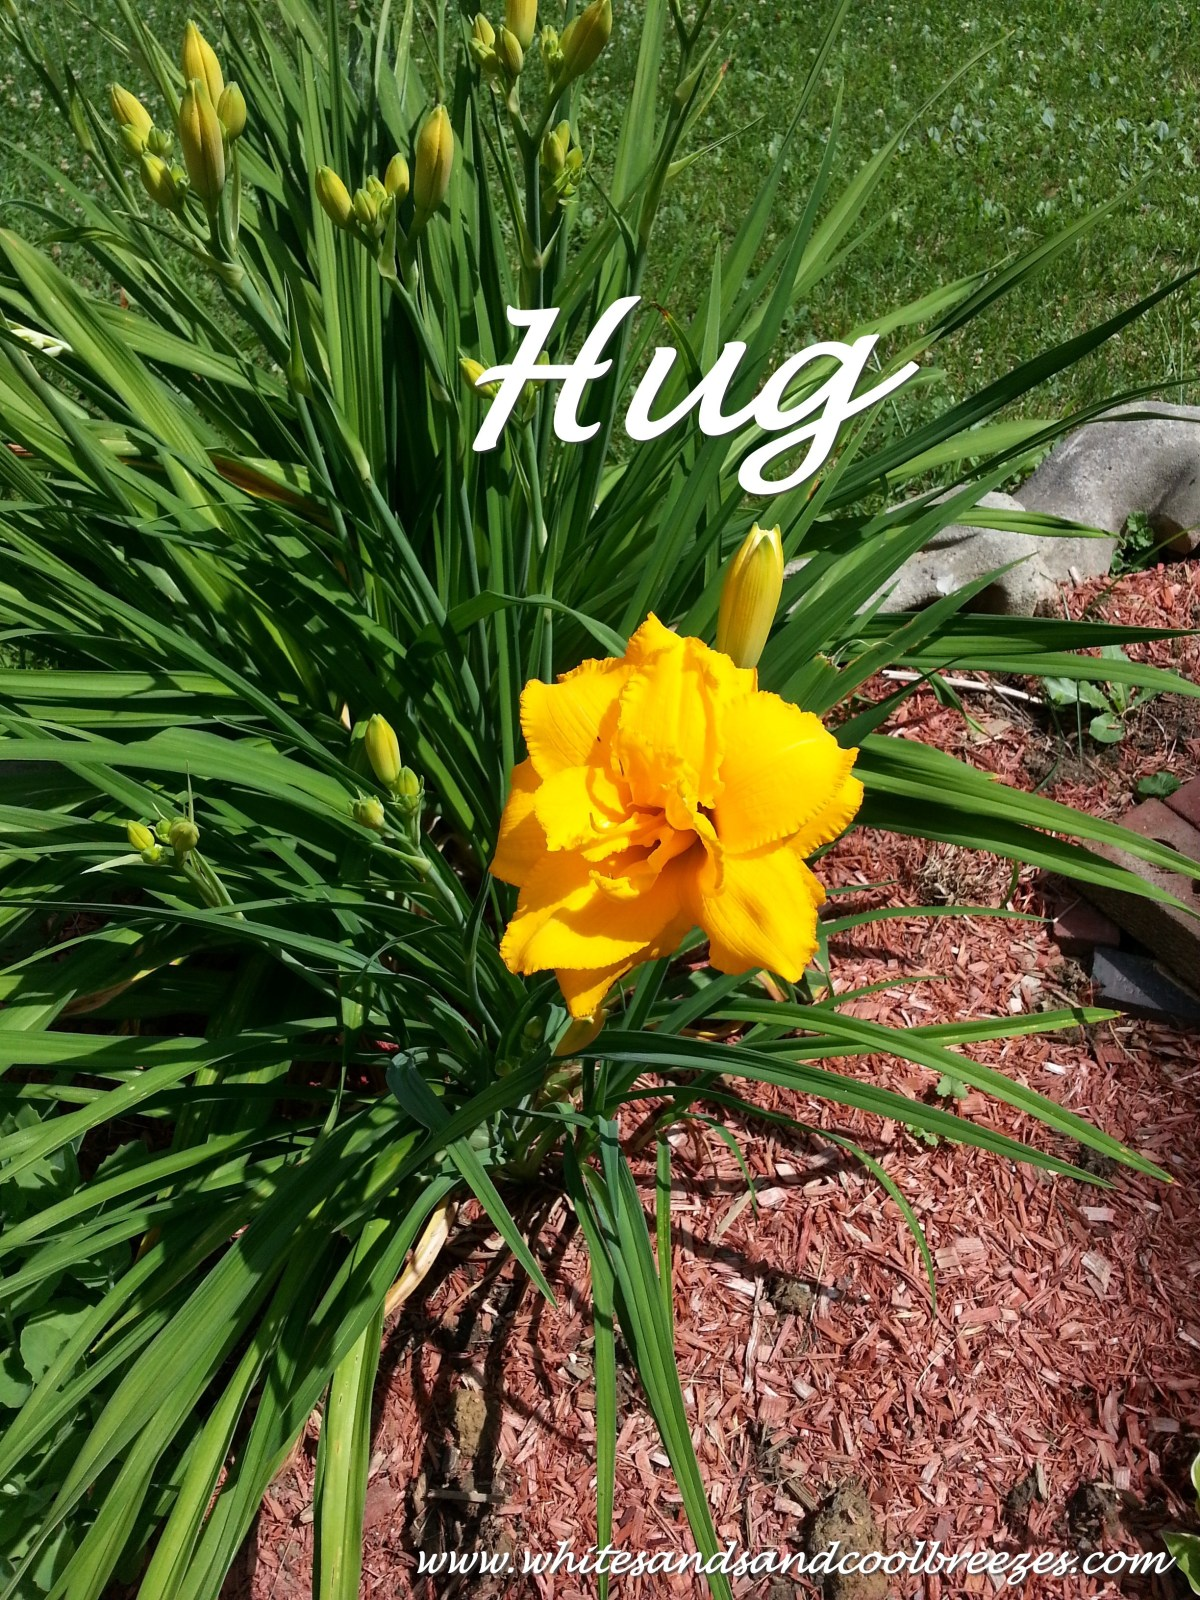 Hug- Thought for the Every Day